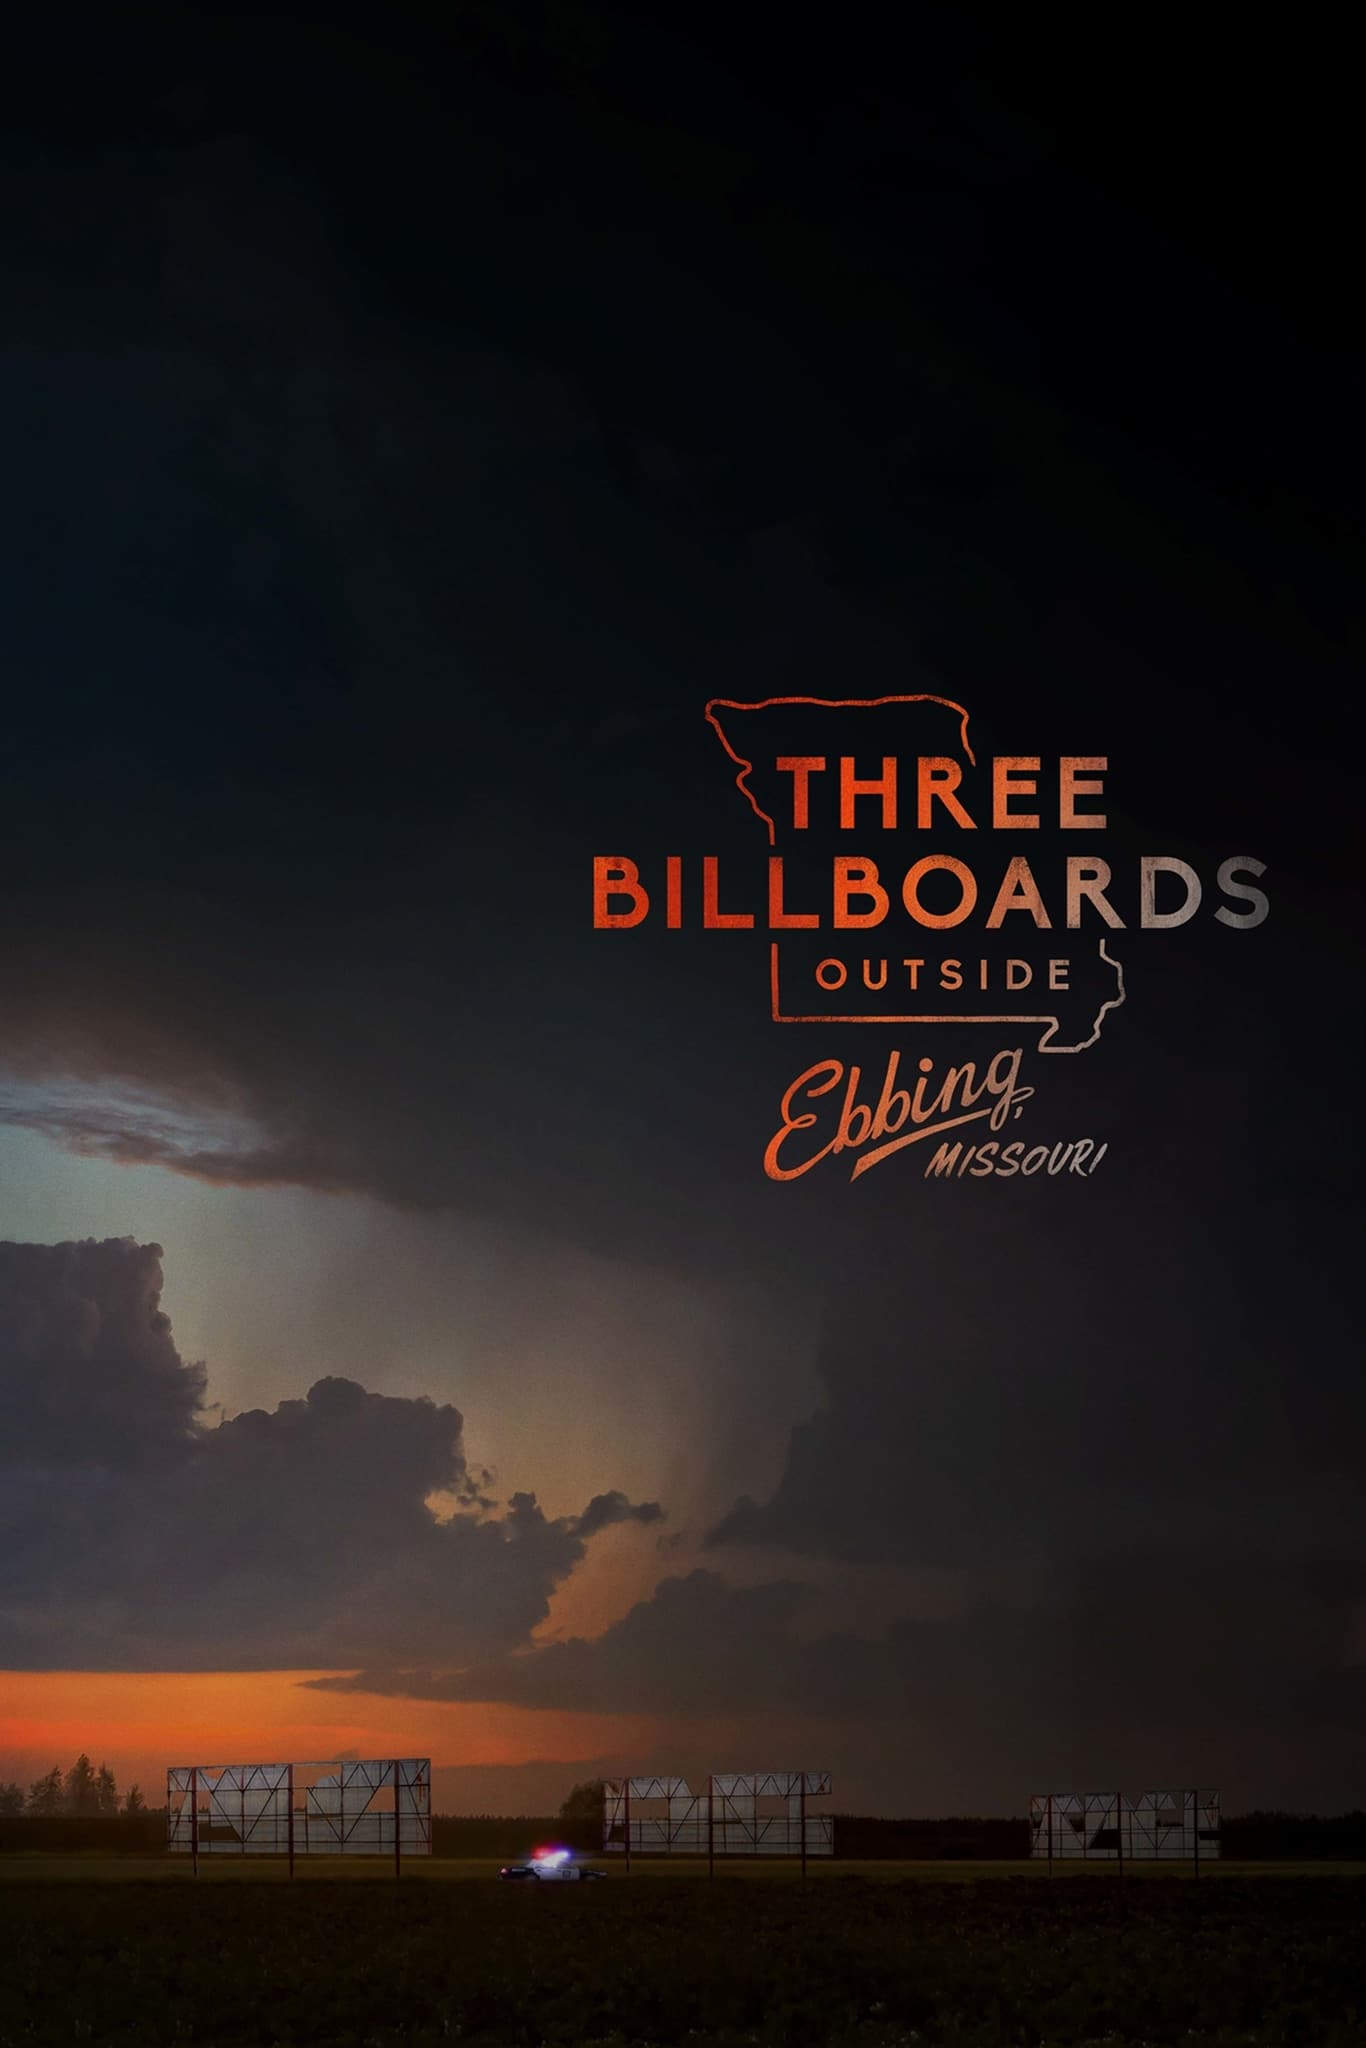 image for Three Billboards Outside Ebbing, Missouri